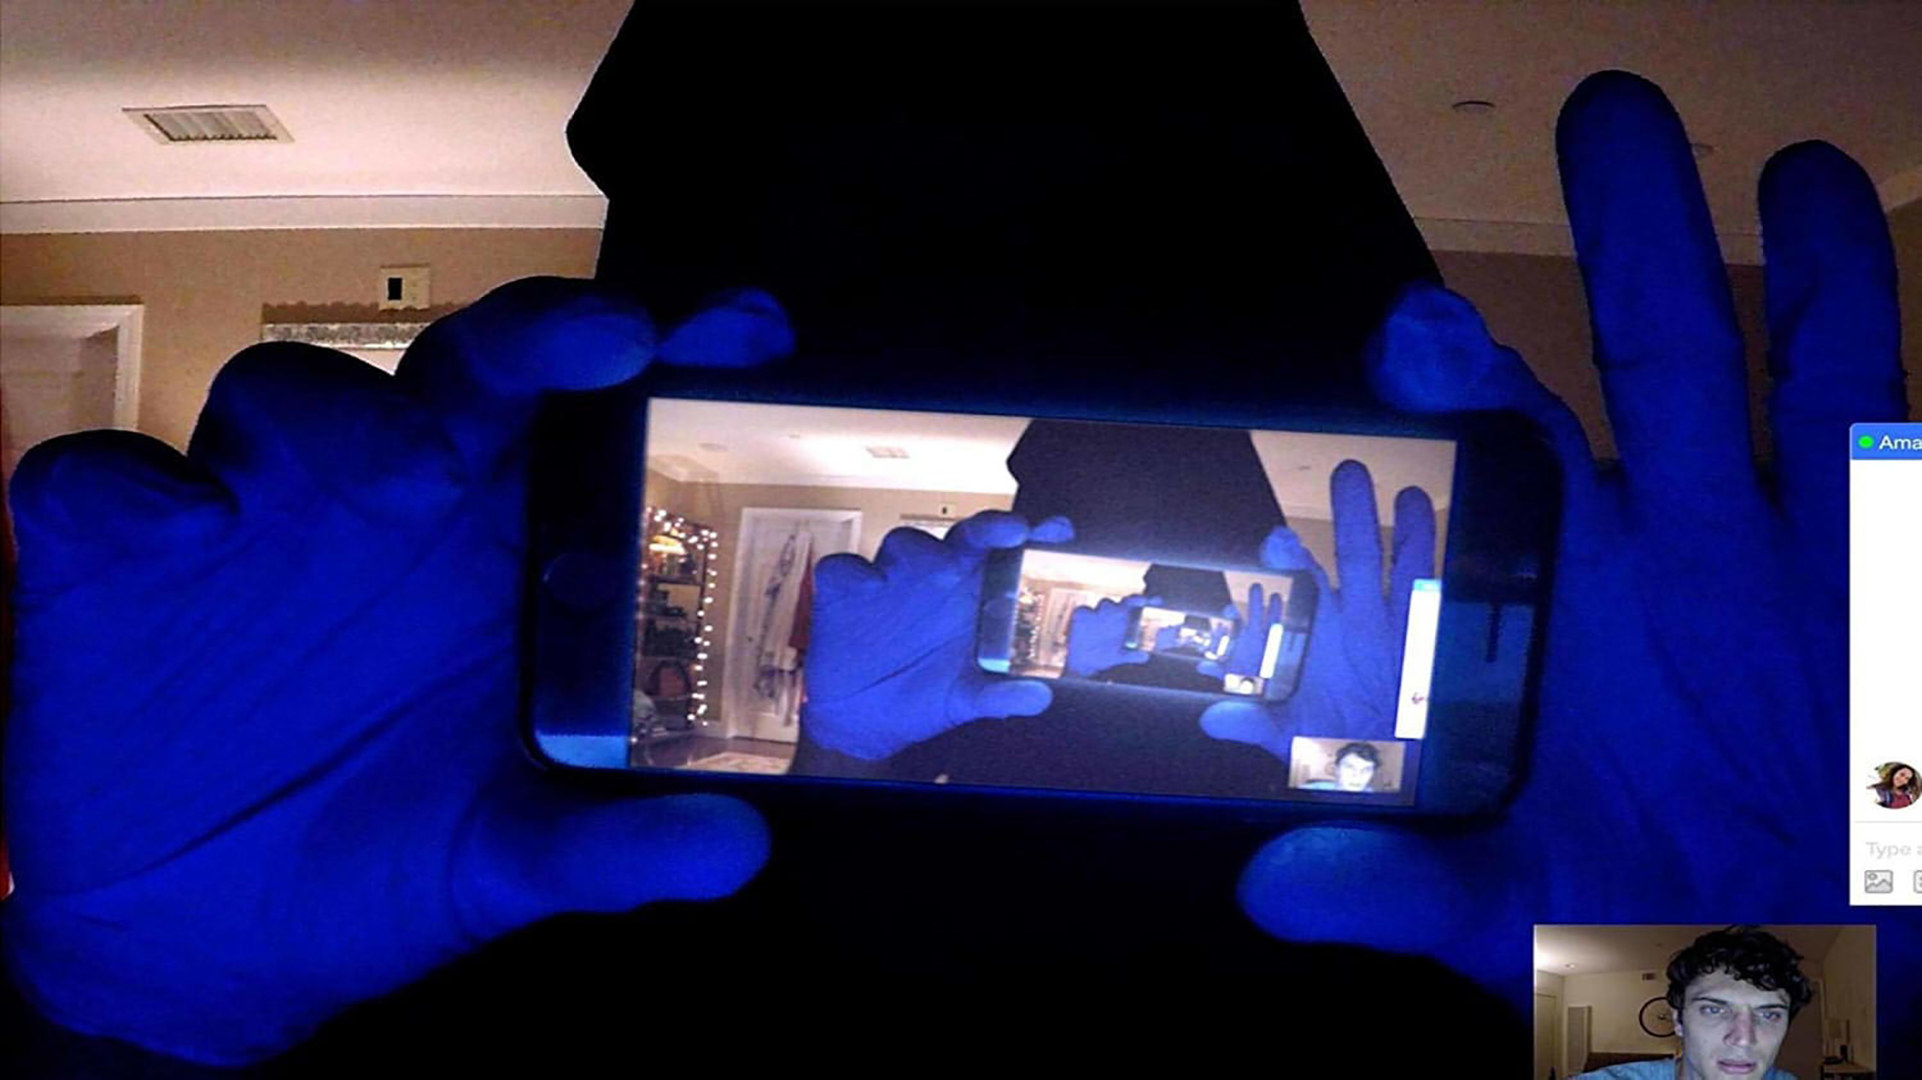 a guy holding a camera phone in front of a screen and doubling the image over and over